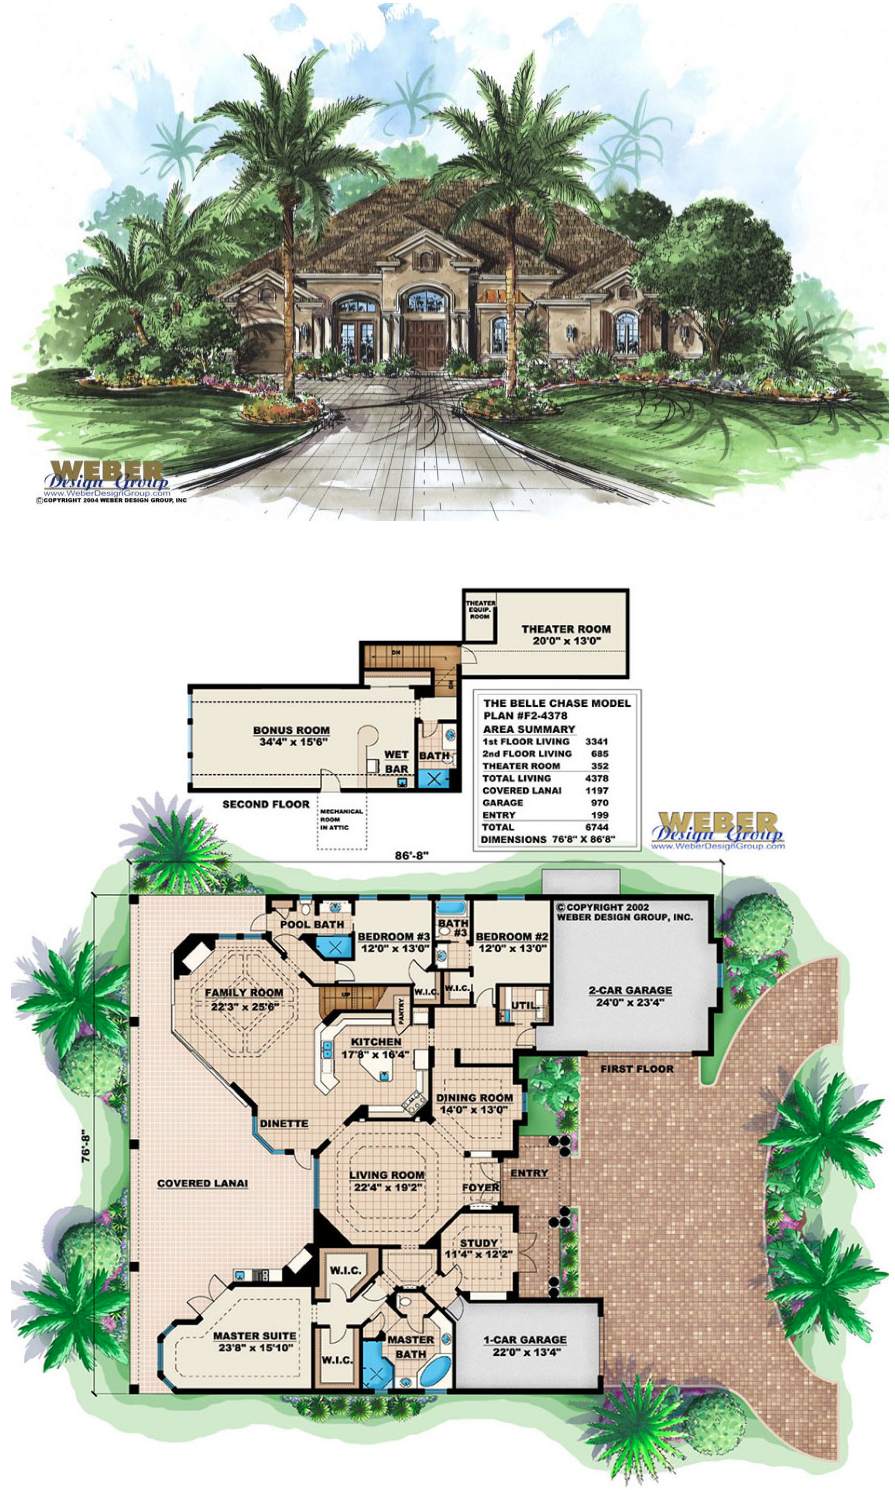 Mediterranean House Plan Contemporary Golf Course Home Floor Plan House Plans Mediterranean House Plan Mediterranean House Plans